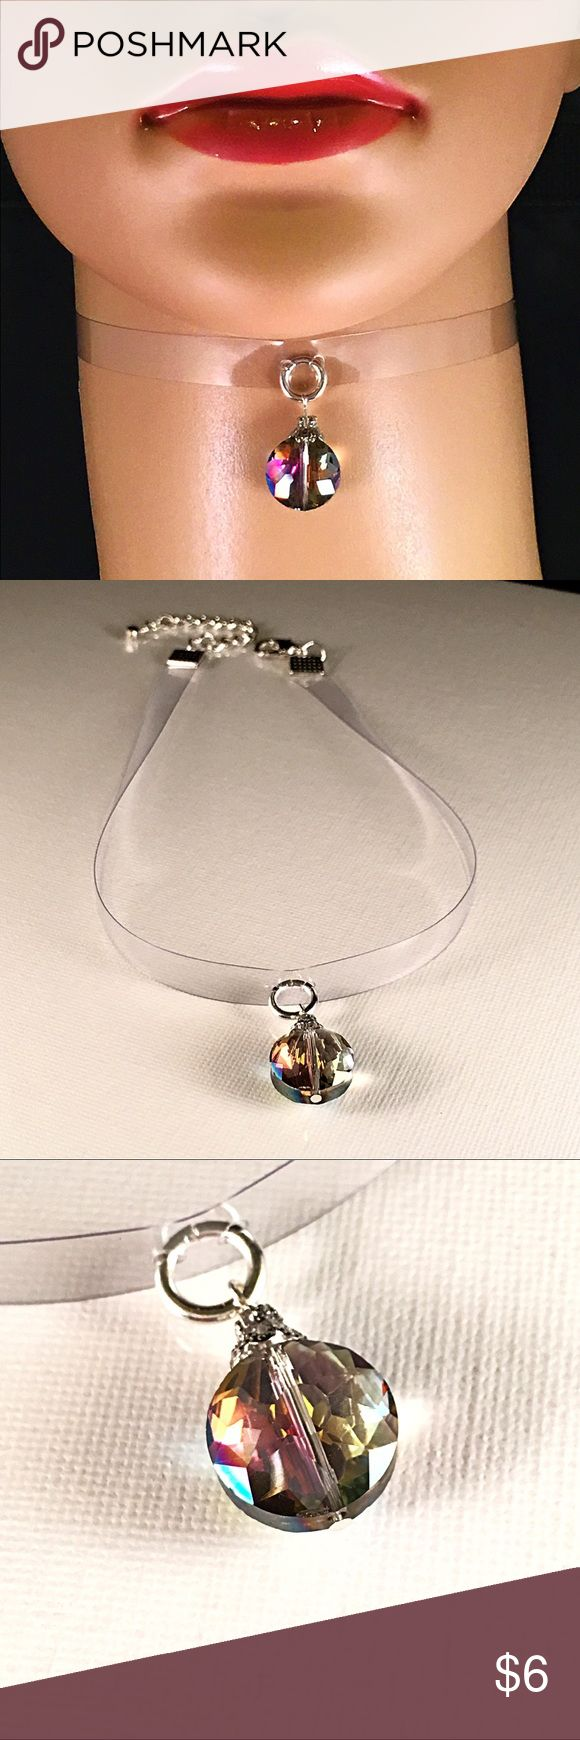 ▫️💎 Vinyl ➕ Australian glass Crystal, Choker💎▫️ ▫️💎 Vinyl ➕ Australian glass Crystal, Choker💎▫️ thin Clear Vinyl band adorned with an 🔮Australian Facetted Glass Crystal pendant that adds Beautiful Color and Sparkle 🔮12 inches ➕2 inch extender chain ➕ polished silver lobster clasp. 🖤🖤made By Mwah💋🖤🖤 got q's I'm here 😊 Mwah💋 Jewelry Necklaces